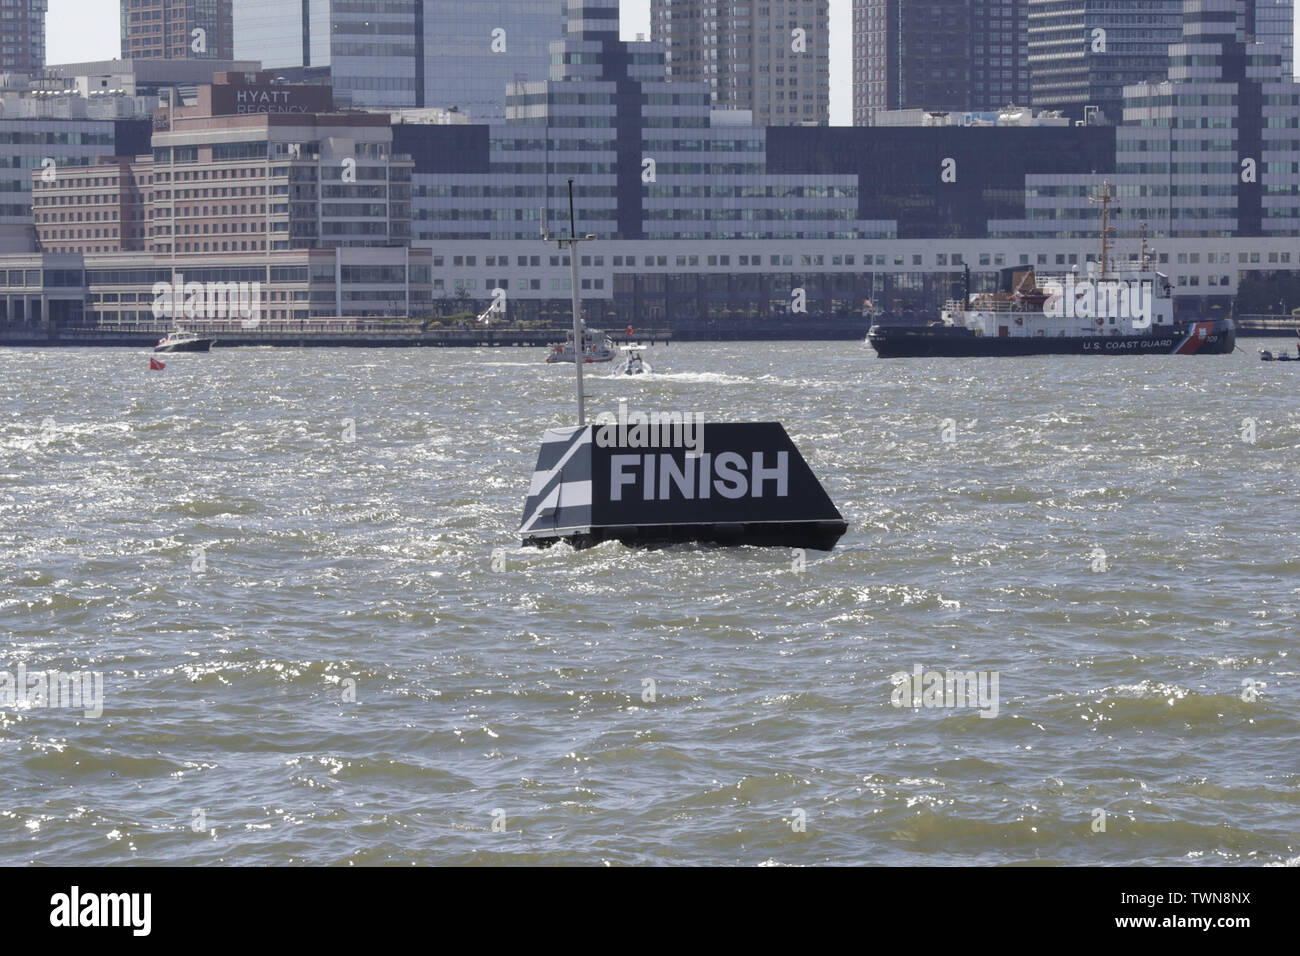 New York, NY, USA. 21st June, 2019. Hudson River, New York, USA, June 21, 2019 - SailGP teams sail their race during racing day 1 of the SailGP event today in New York.Photo: Luiz Rampelotto/EuropaNewswire.PHOTO CREDIT MANDATORY. Credit: Luiz Rampelotto/ZUMA Wire/Alamy Live News Stock Photo